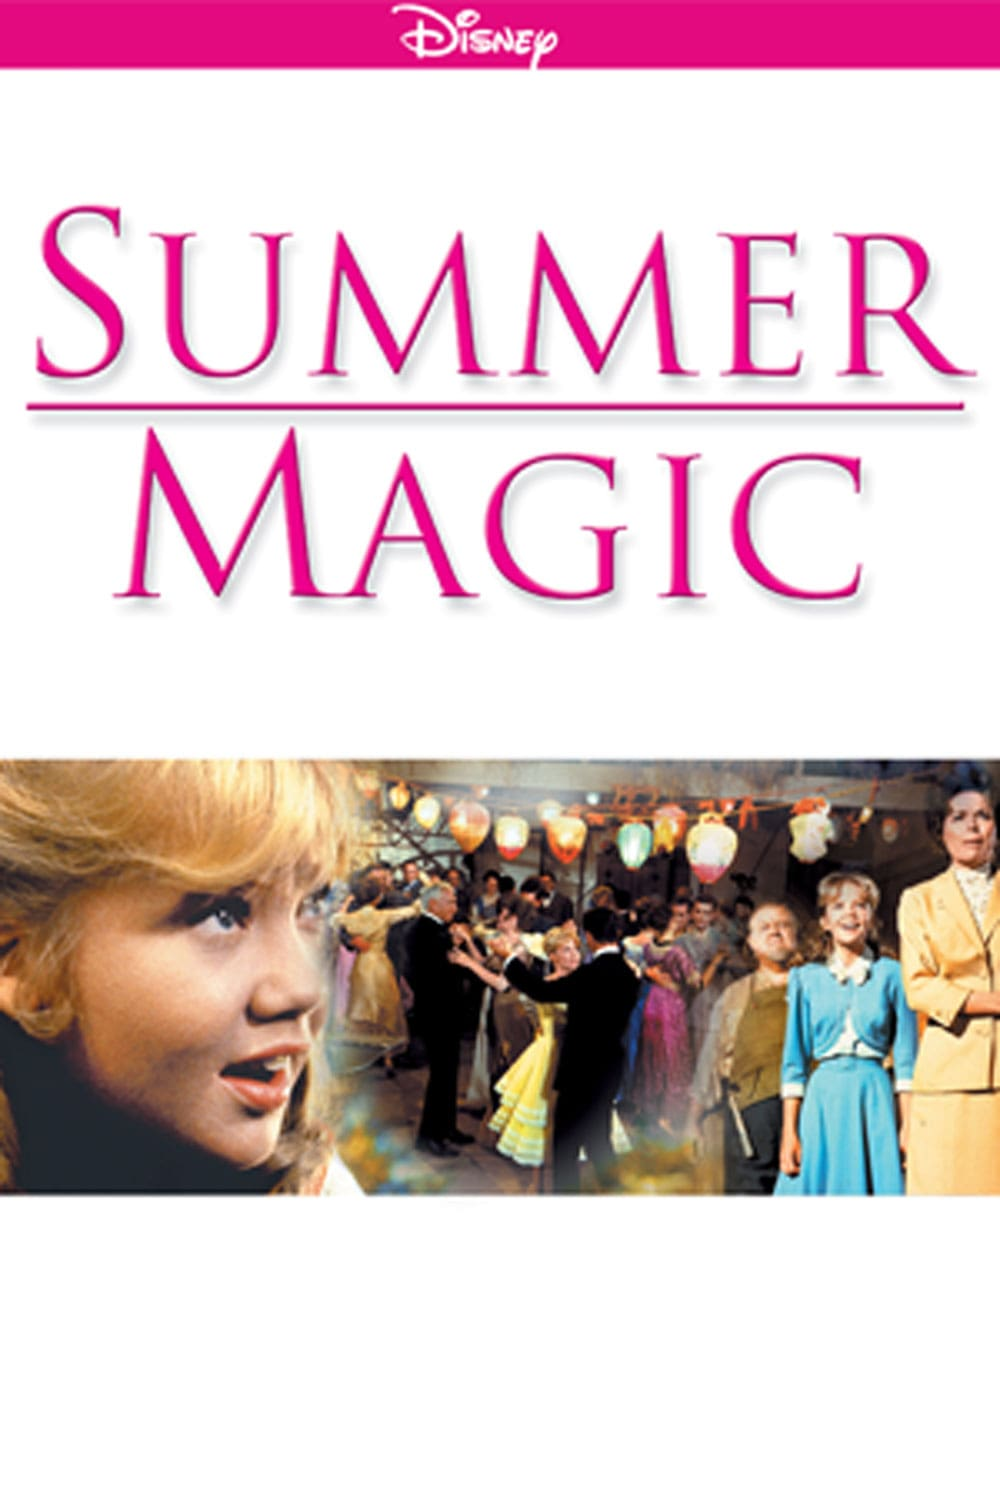 Summer Magic | Disney Movies